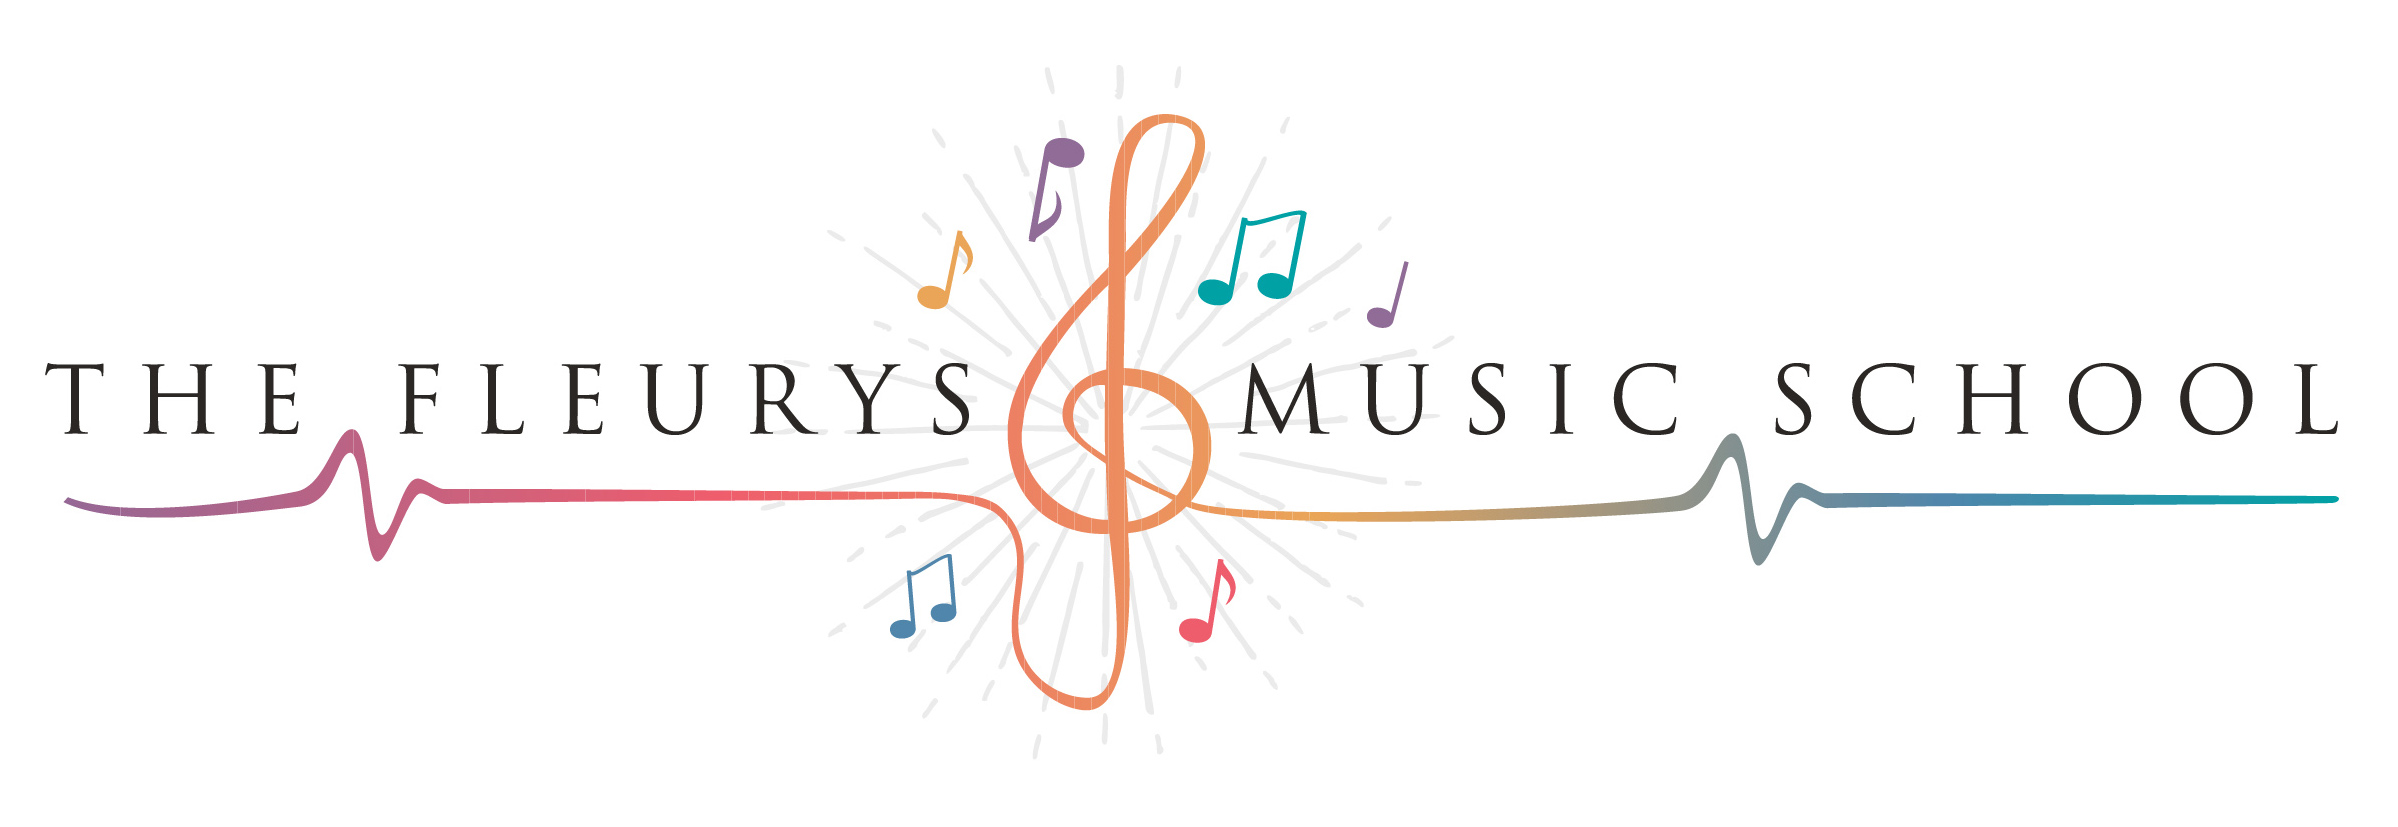 The Fleurys Music School